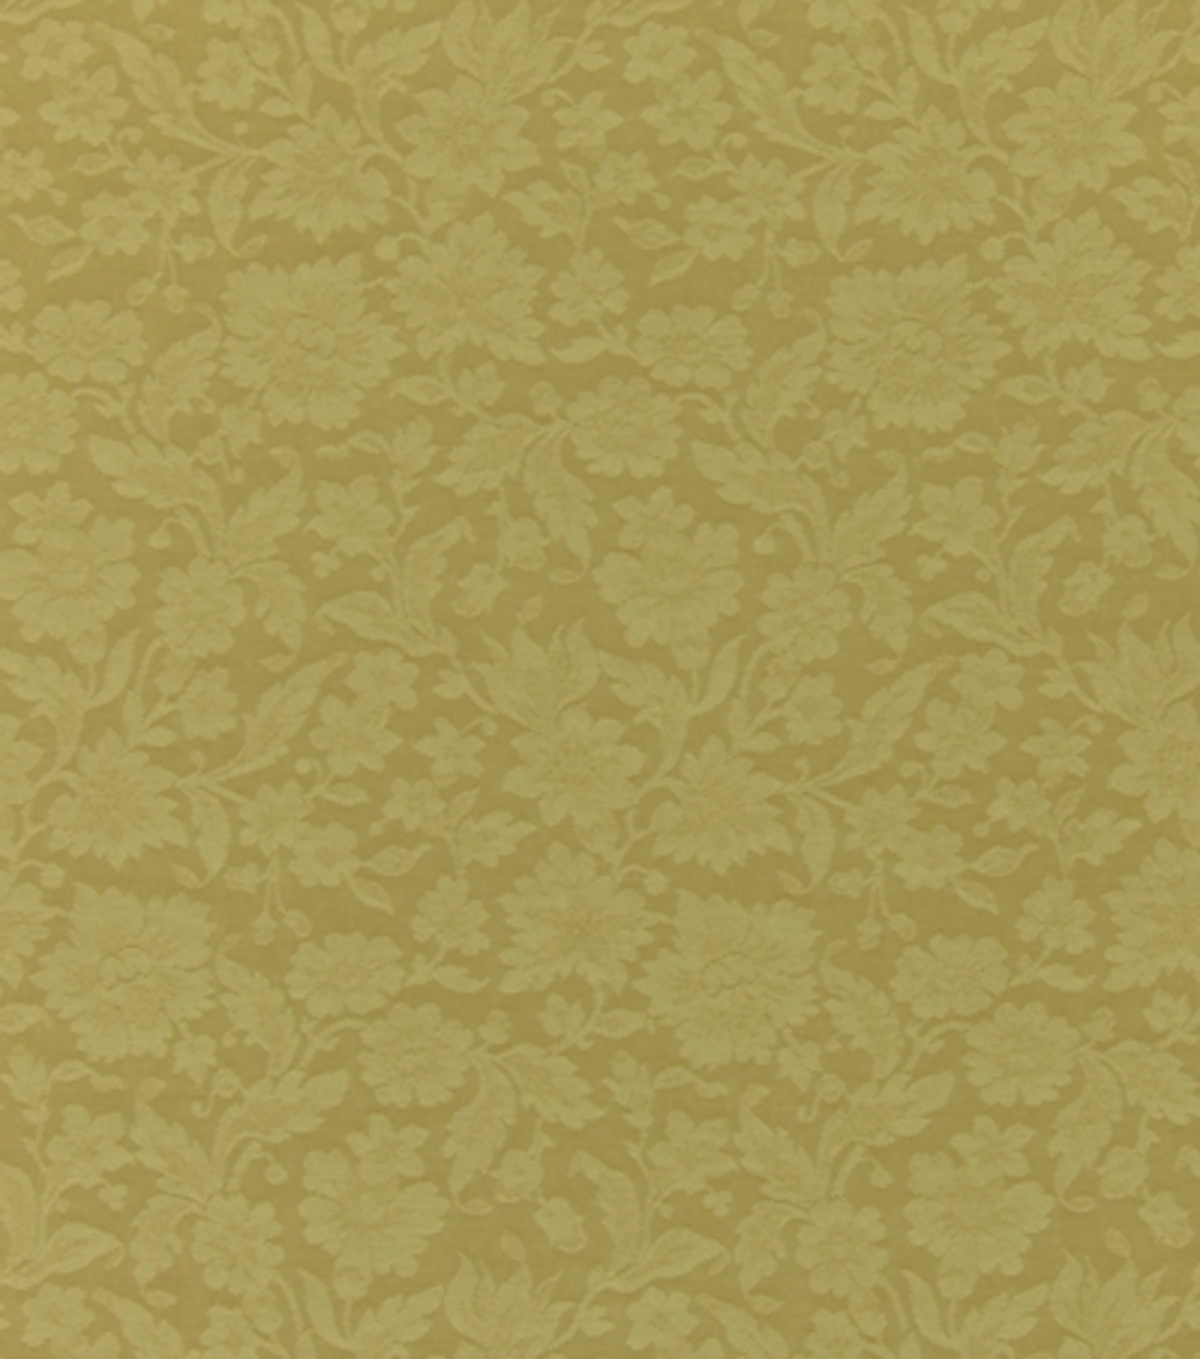 Home Decor 8\u0022x8\u0022 Fabric Swatch-Covington Felicity 168 Teastain